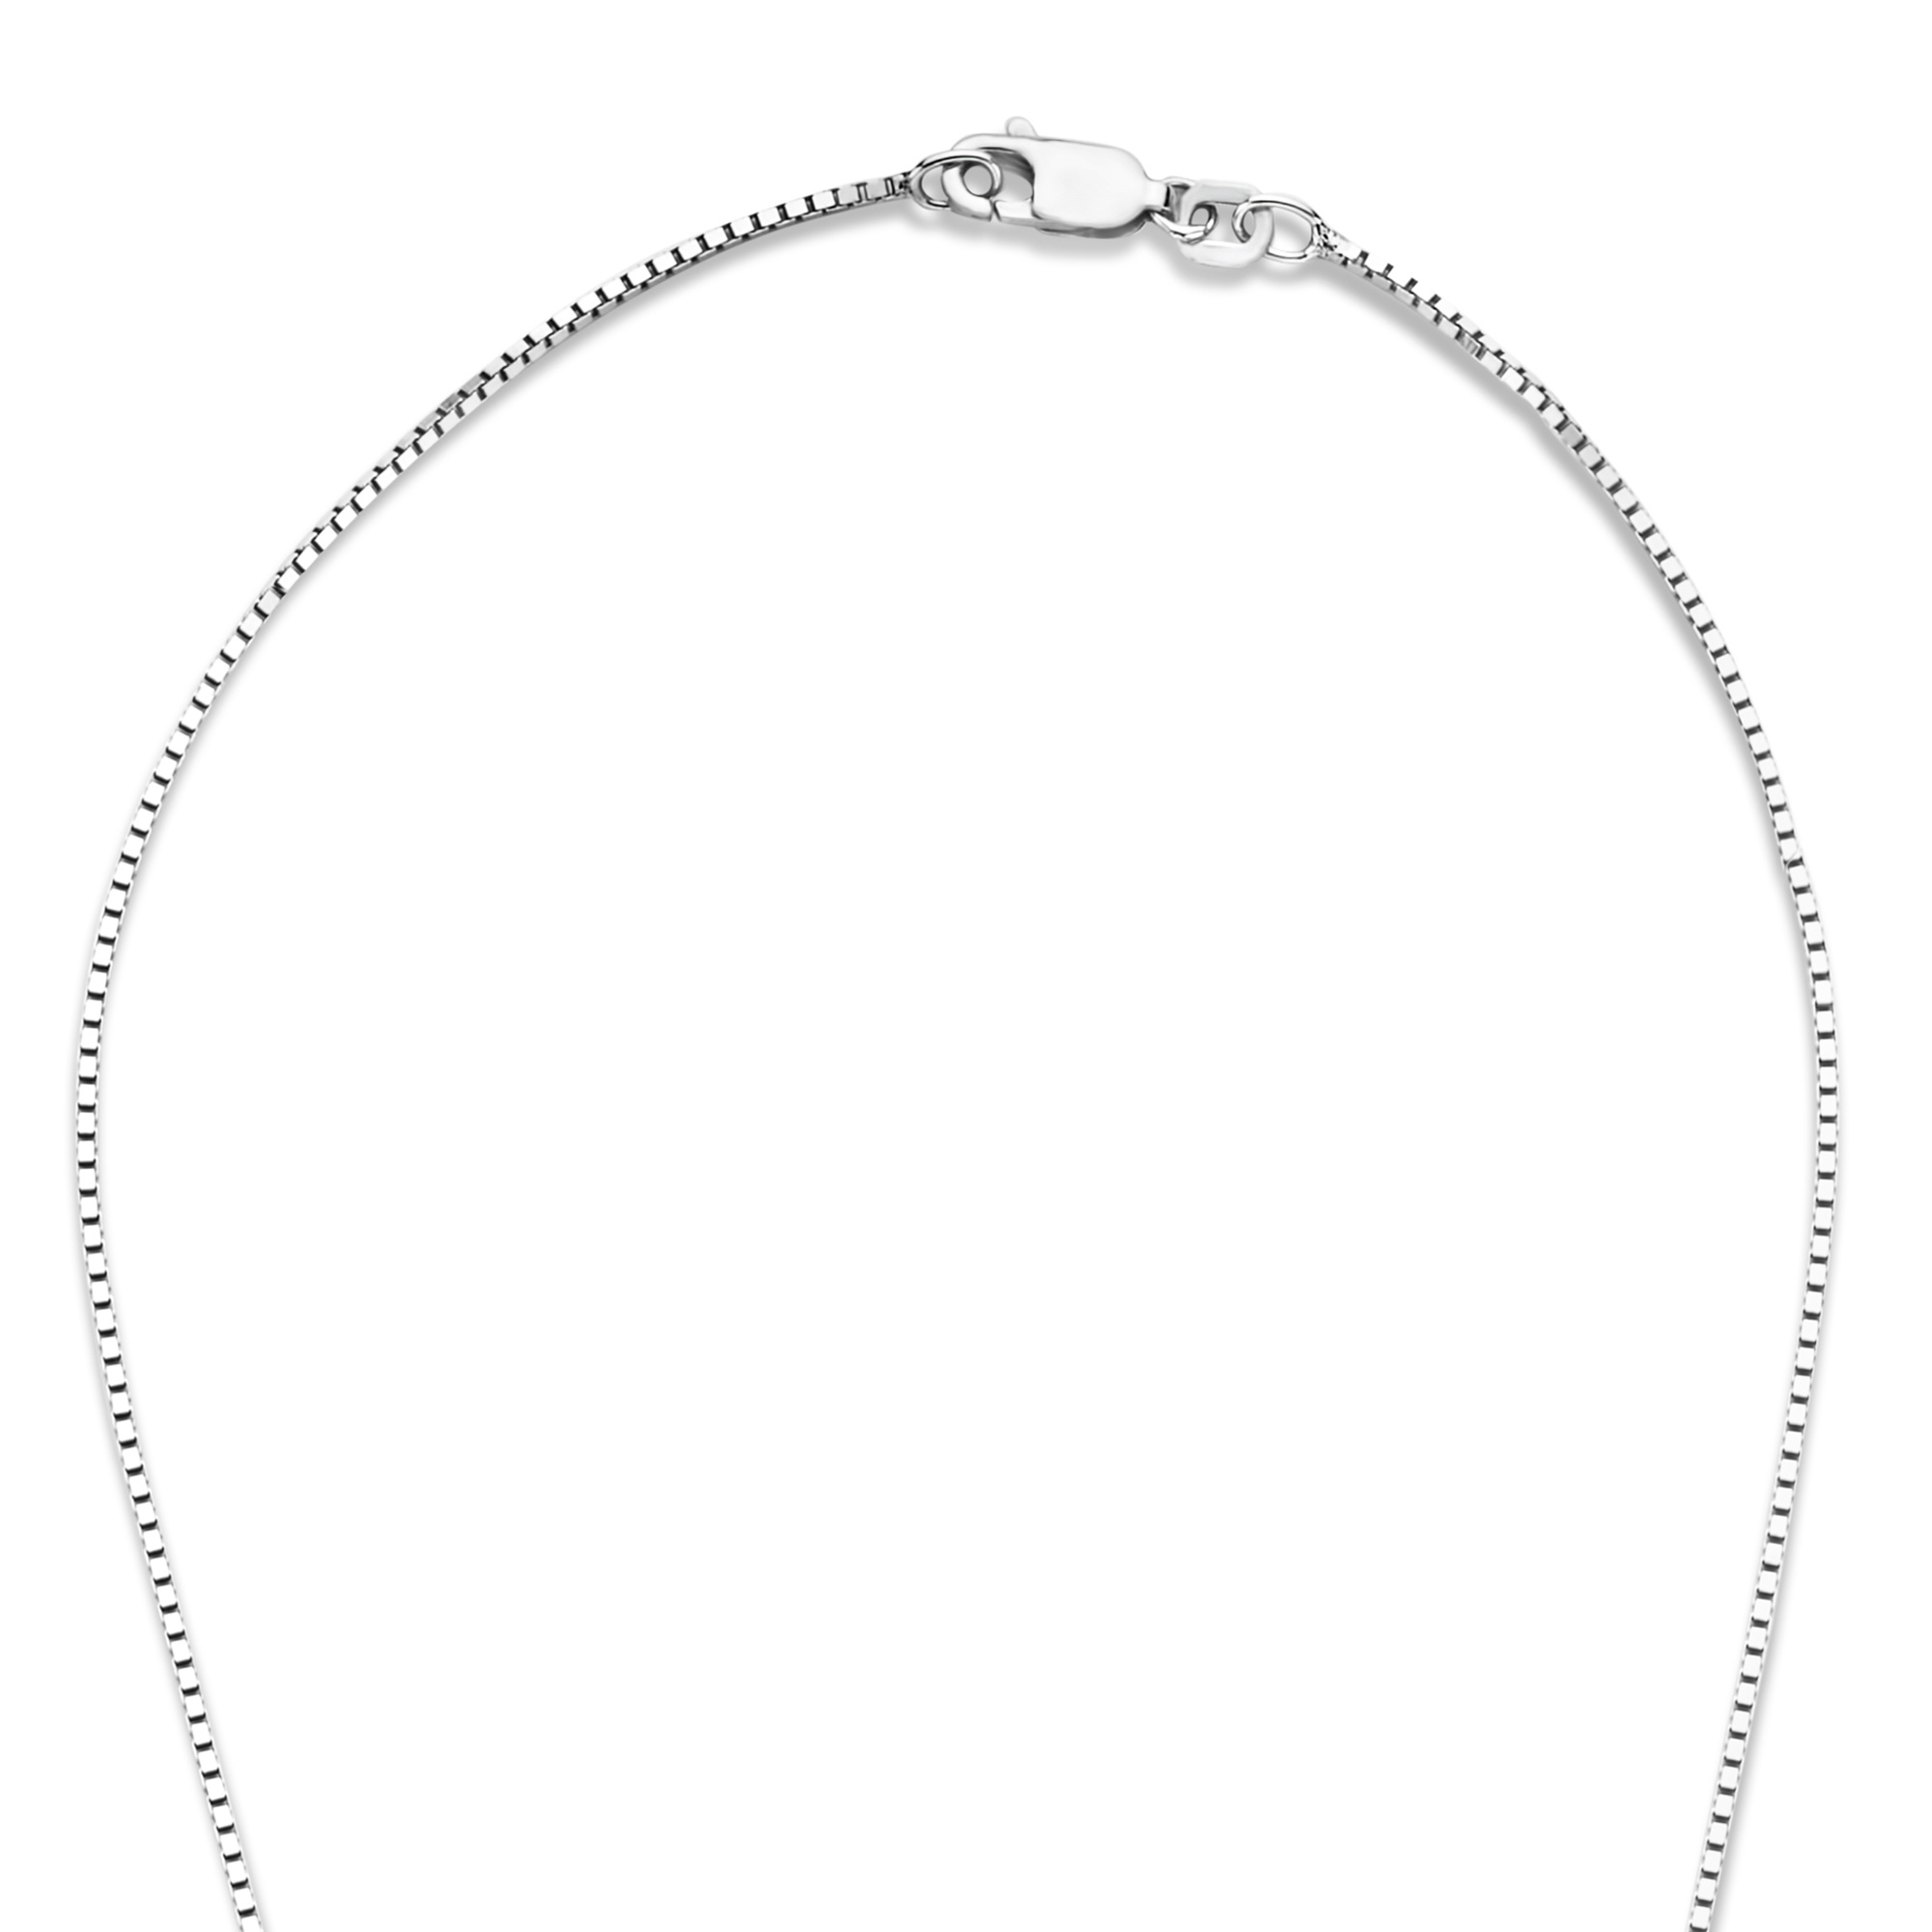 Selected Jewels Léna Inès 925 sterling silver necklace